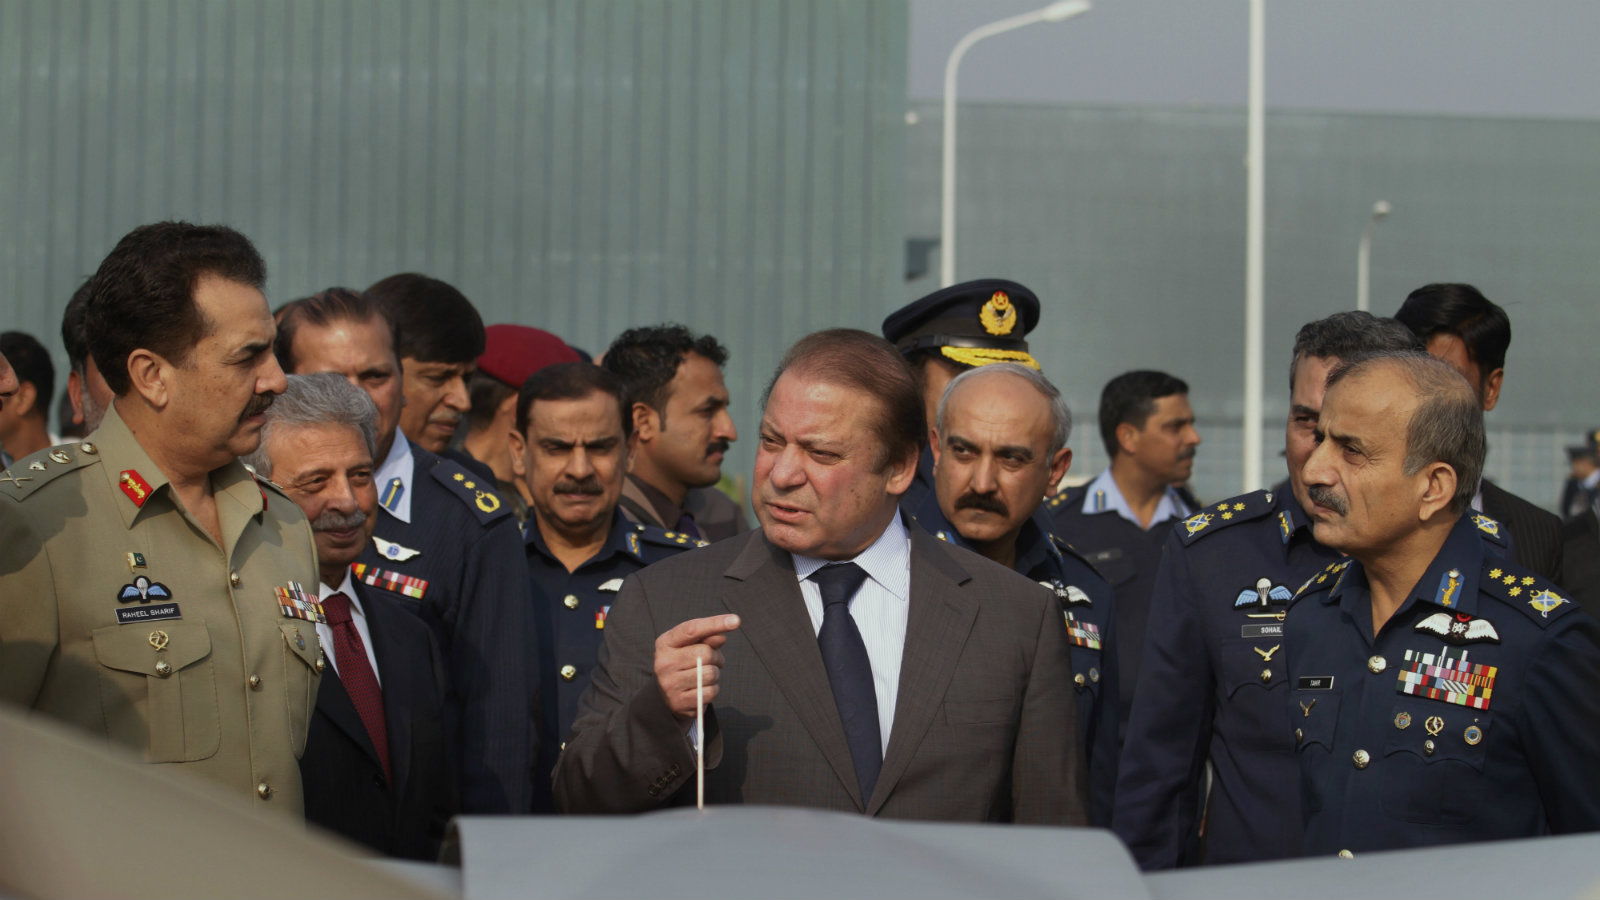 Pakistani prime minister Nawaz Sharif with Pakistan Army chief Gen. Raheel Sharif (left) at the Kamra air base.